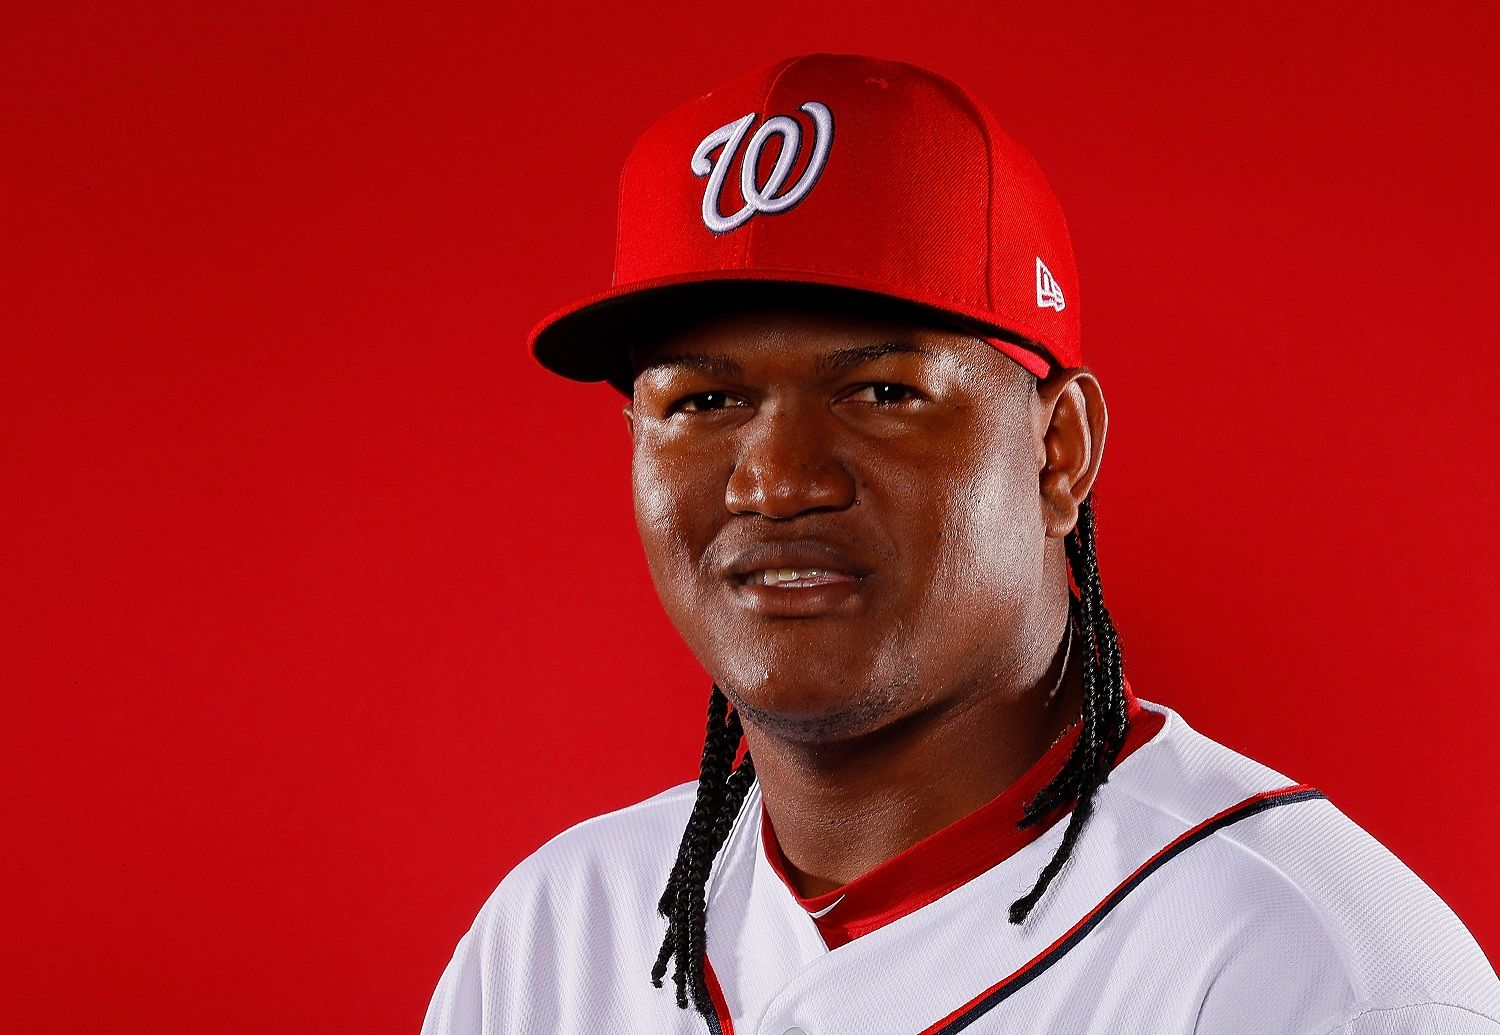 WEST PALM BEACH, FL - FEBRUARY 22:  Enny Romero #72 of the Washington Nationals poses for a photo during photo days at The Ballpark of the Palm Beaches on February 22, 2018 in West Palm Beach, Florida.  (Photo by Kevin C. Cox/Getty Images)